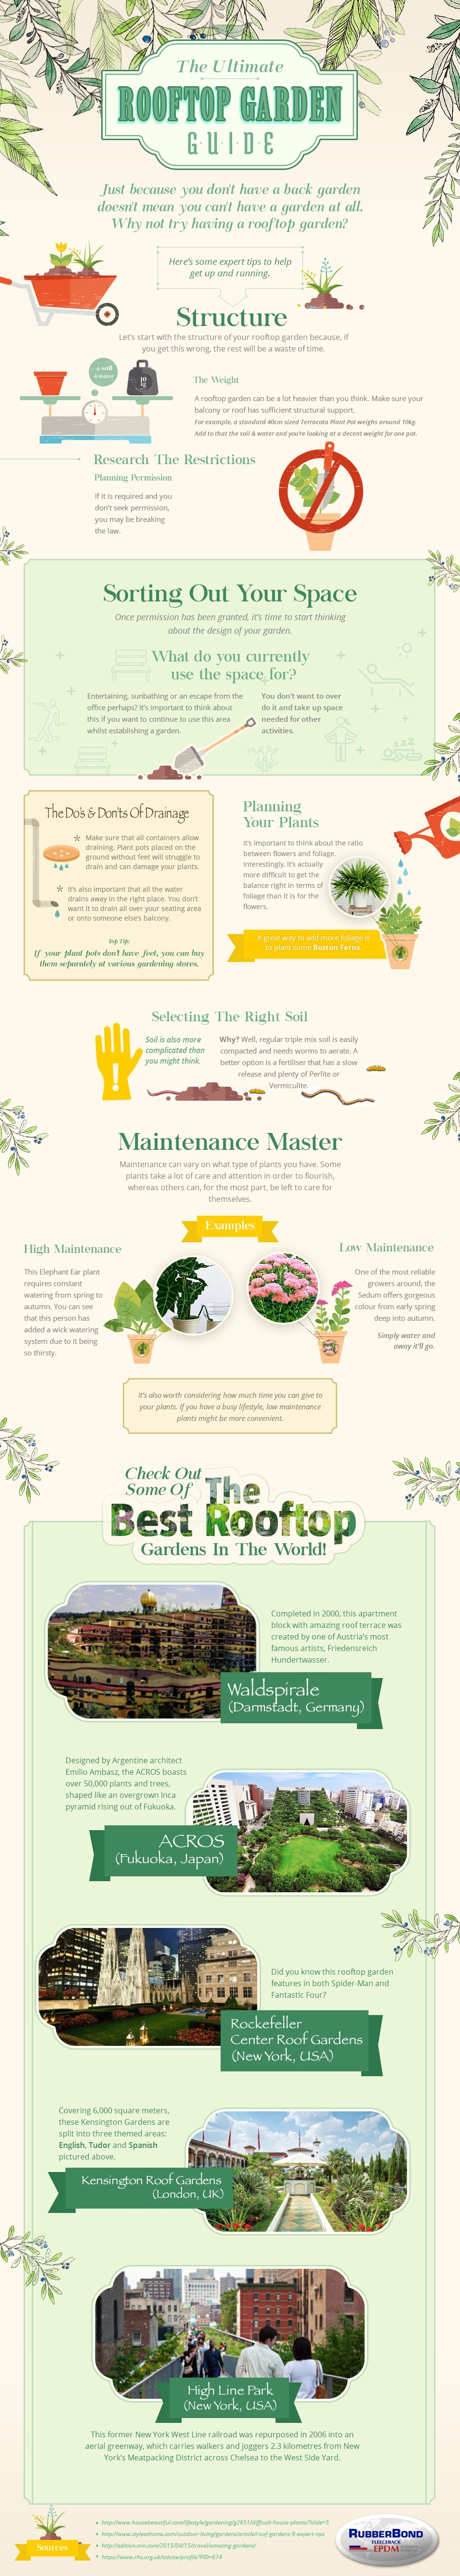 Ultimate Rooftop Garden Guide [Infographic]